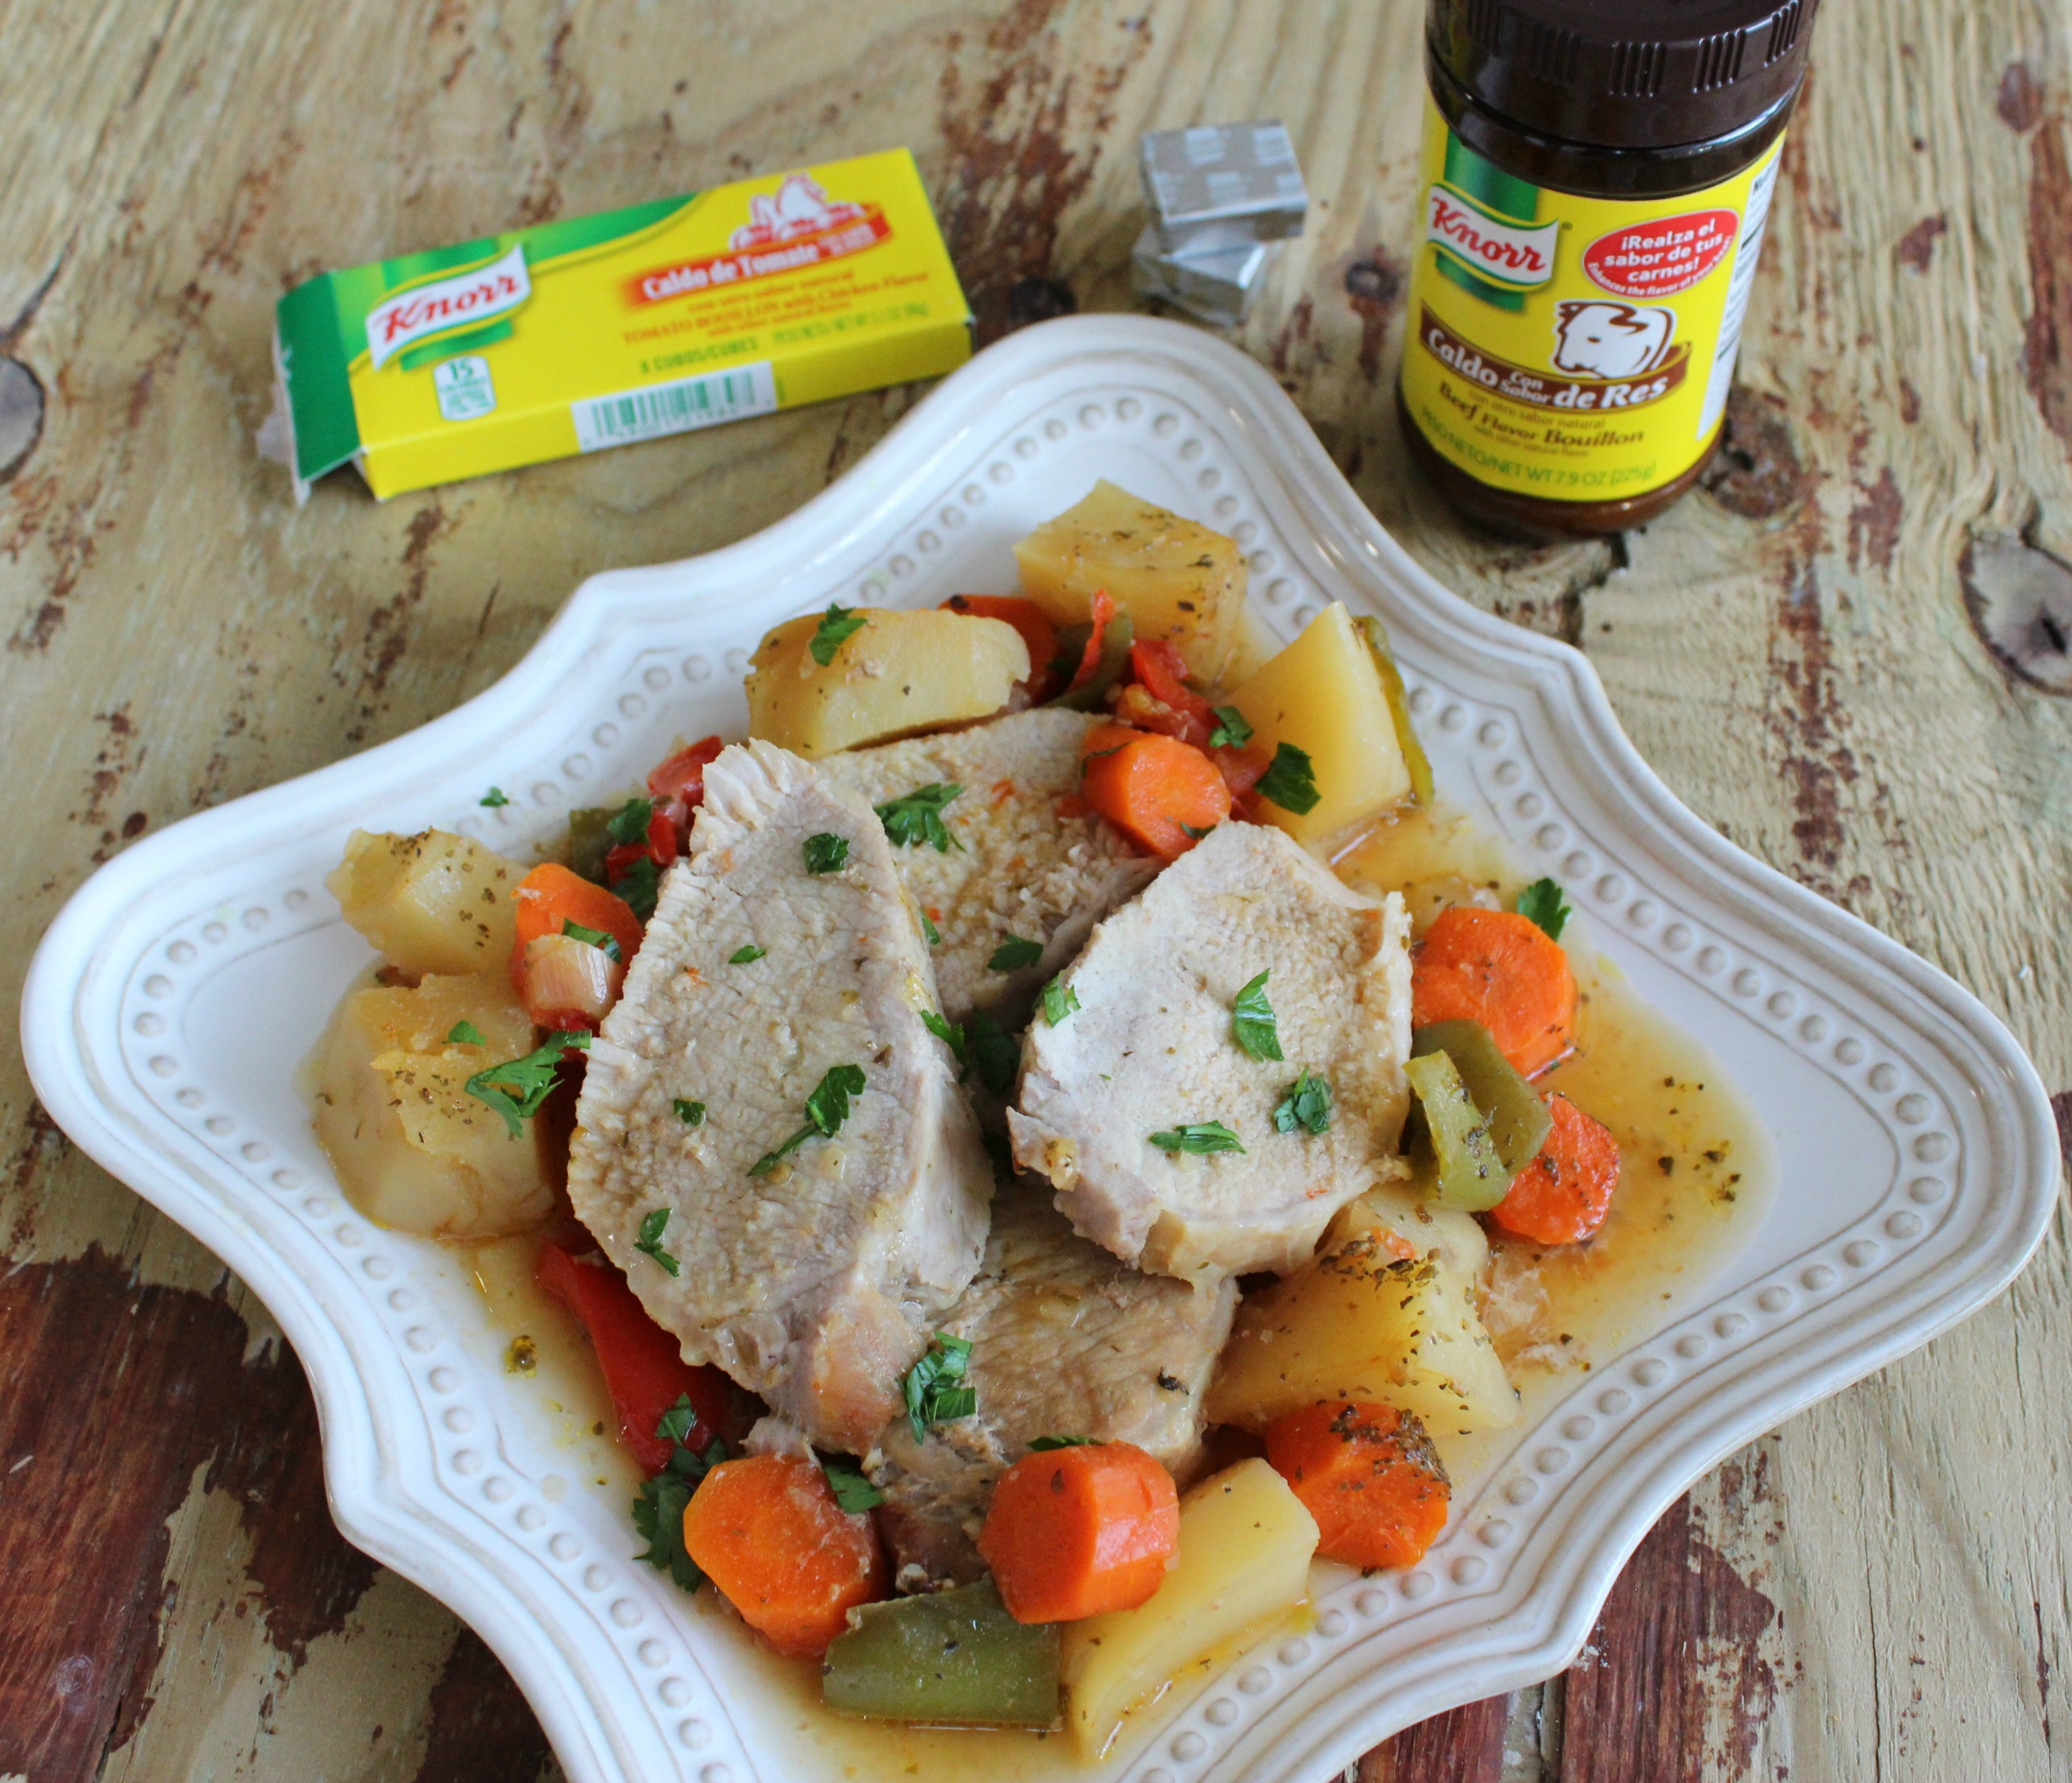 Pork Loin with Potatoes and Carrots